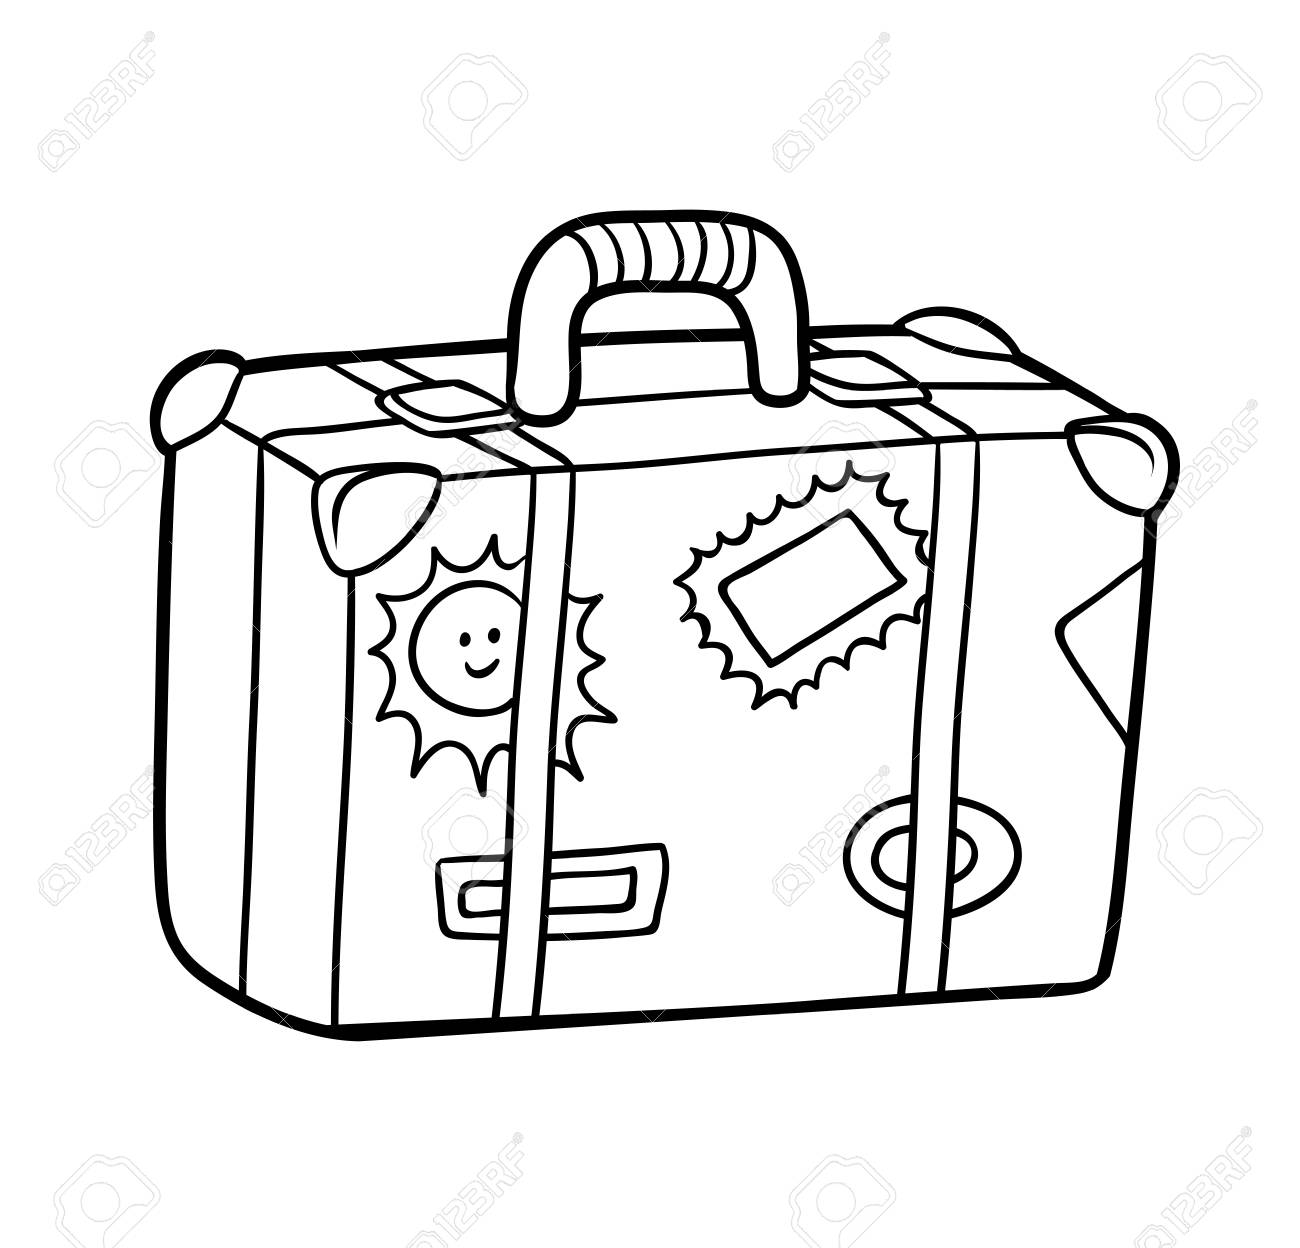 coloring book for children suitcase with stickers royalty free vectors and stock coloring pages Suitcase Coloring Page